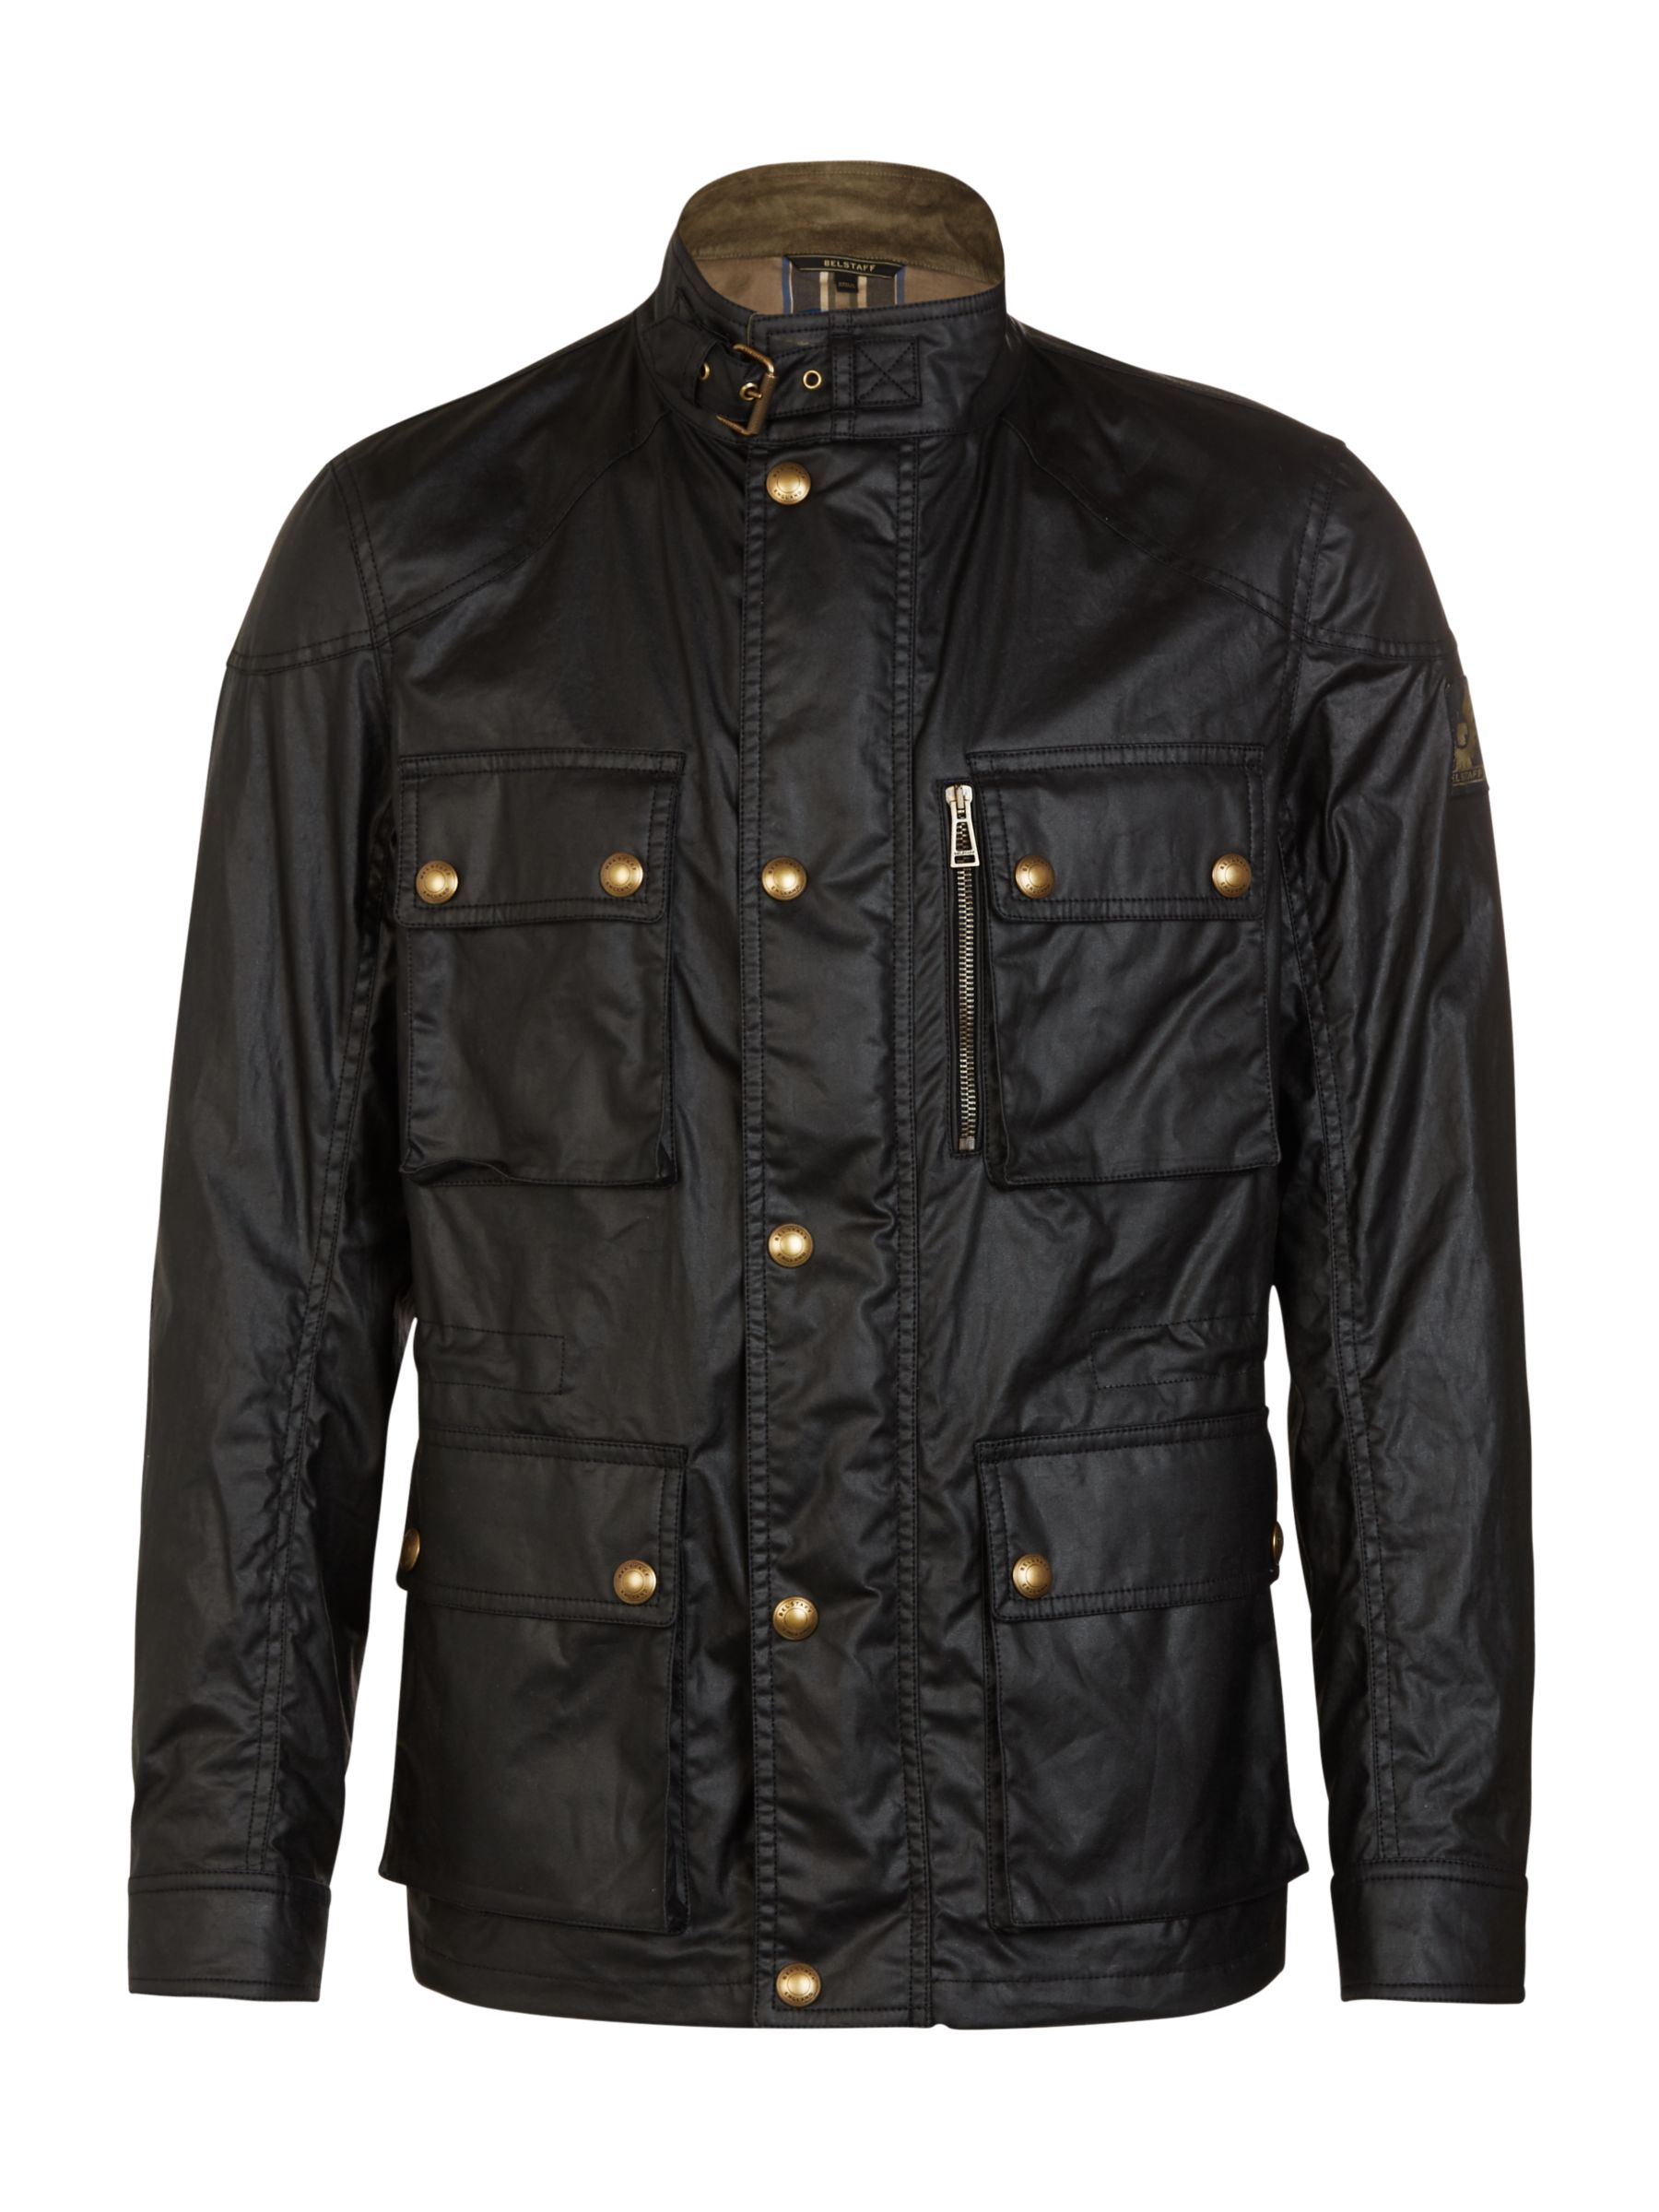 Belstaff Belstaff Trialmaster 4-Pocket Water Resistant Waxed Jacket